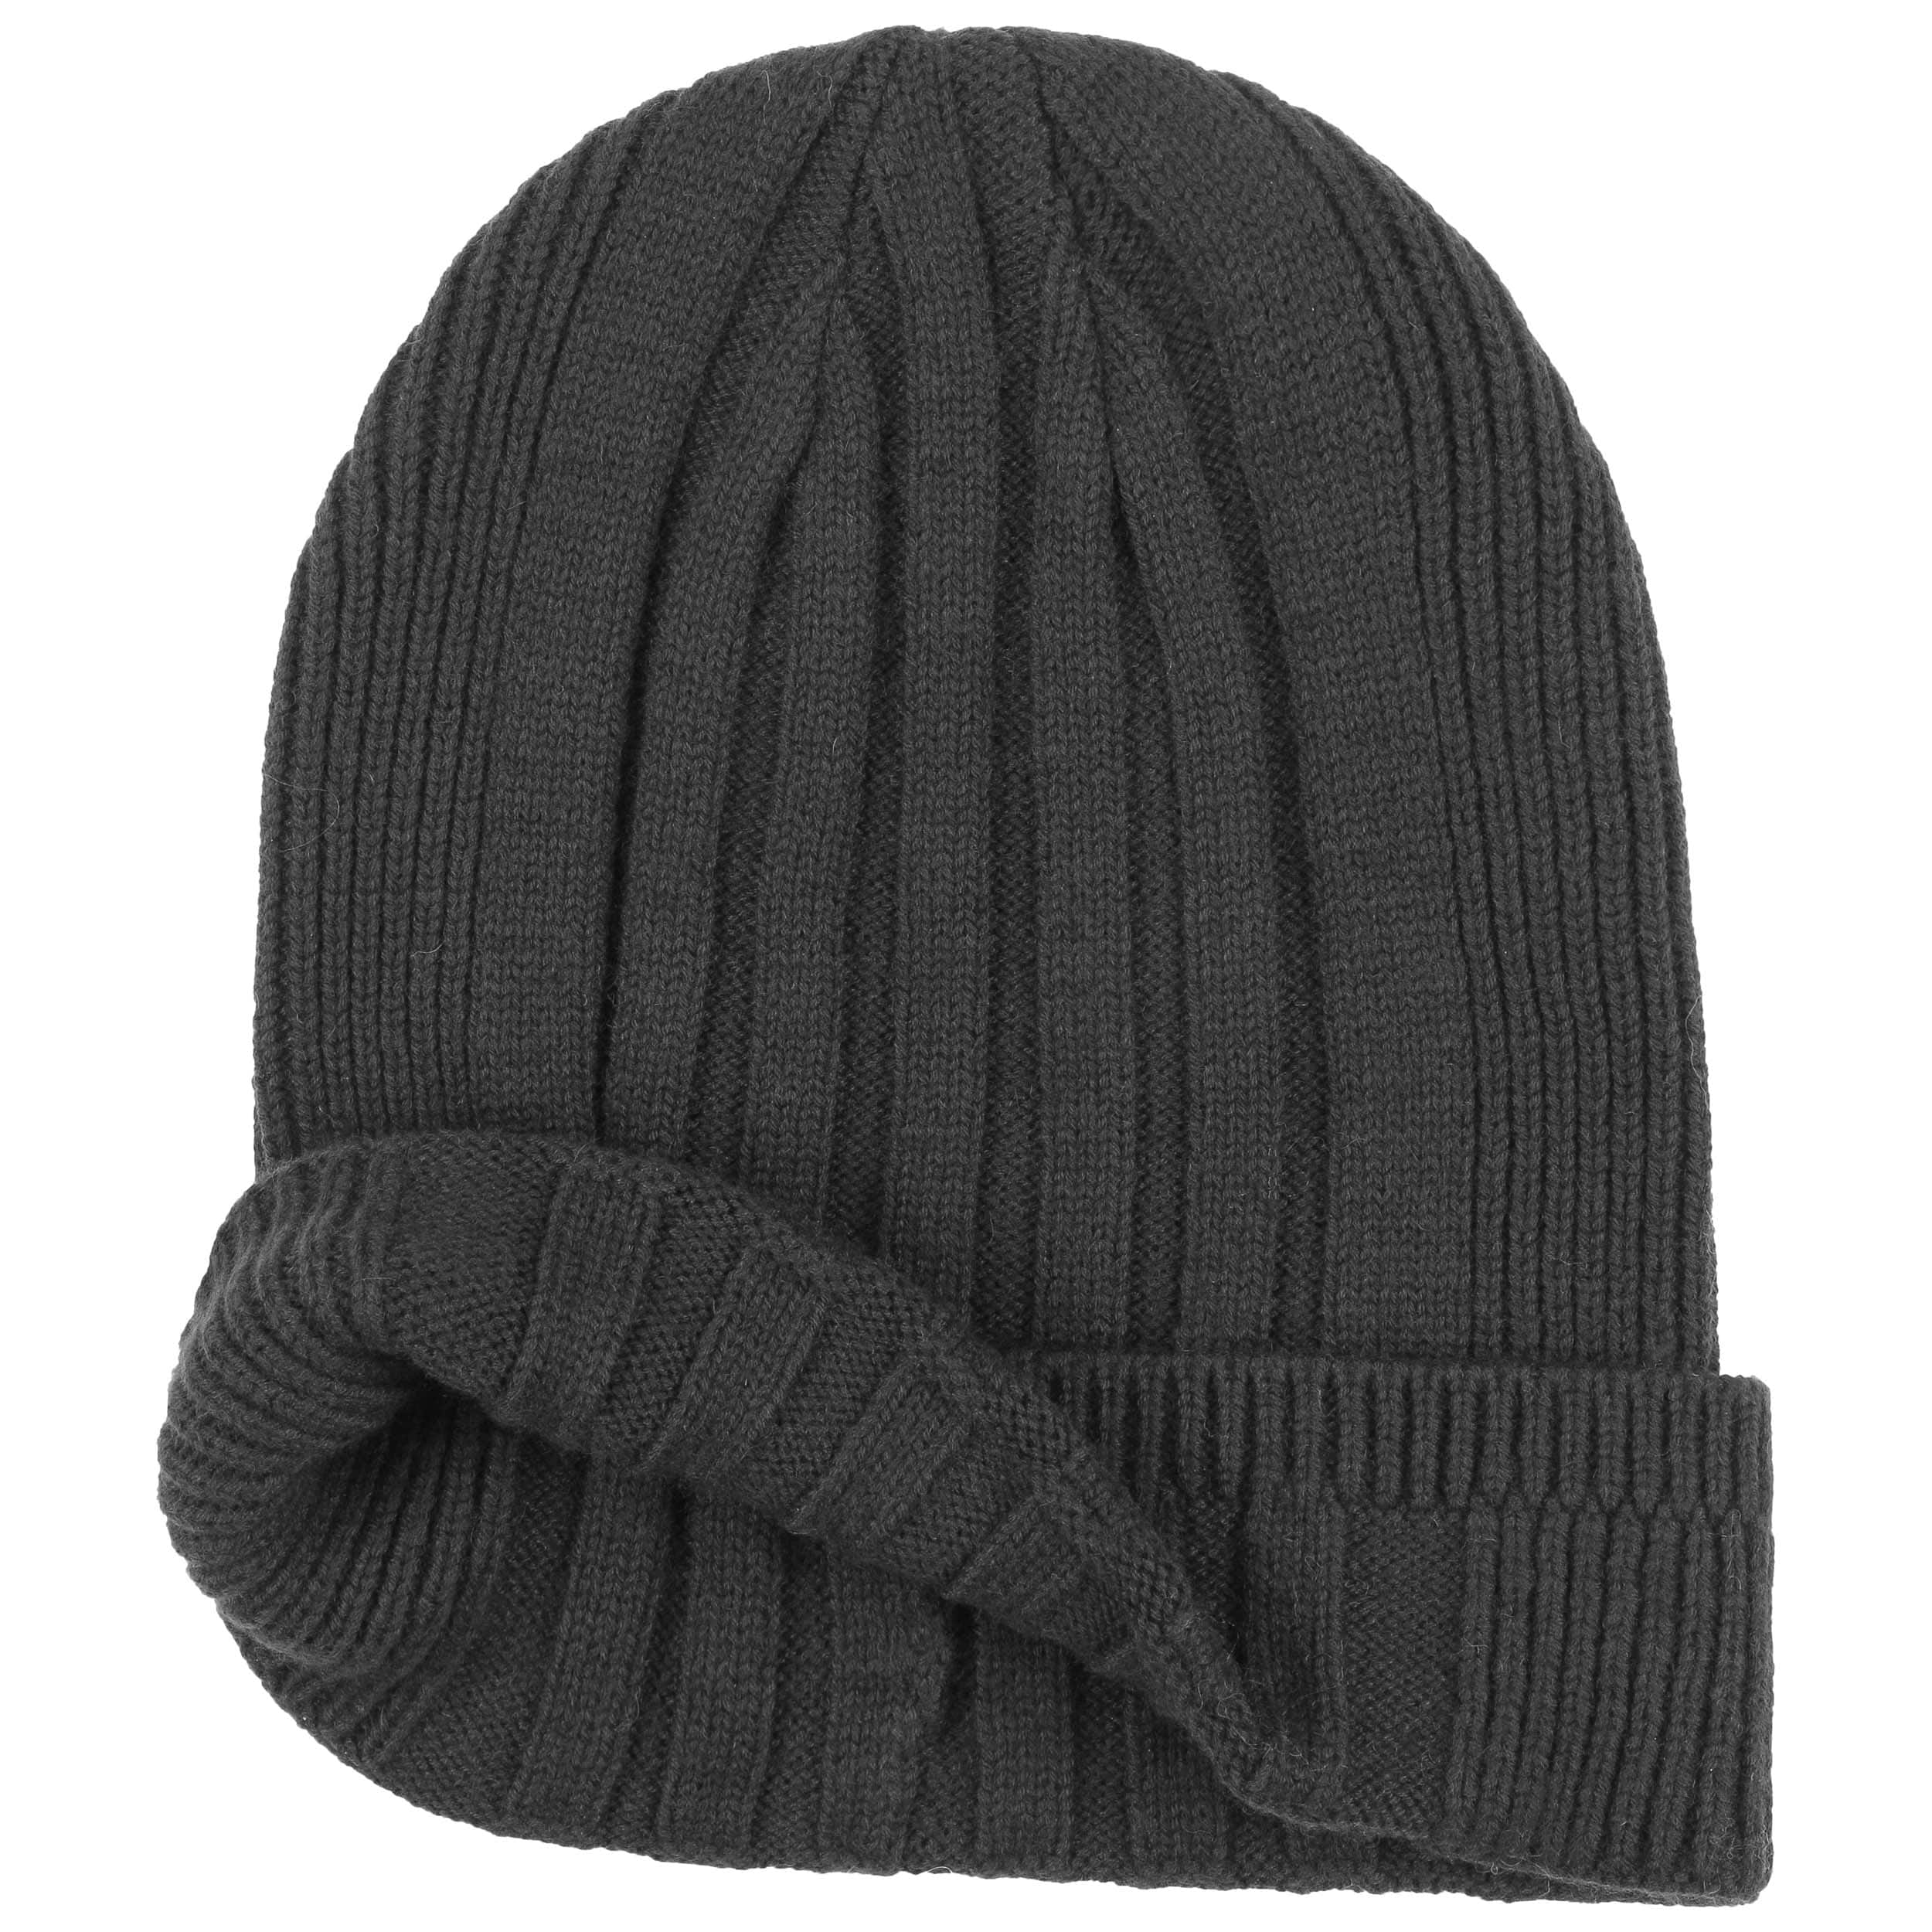 a20d5068a30 ... Knit Mix Beanie with Cuff by UGG - black 1 ...